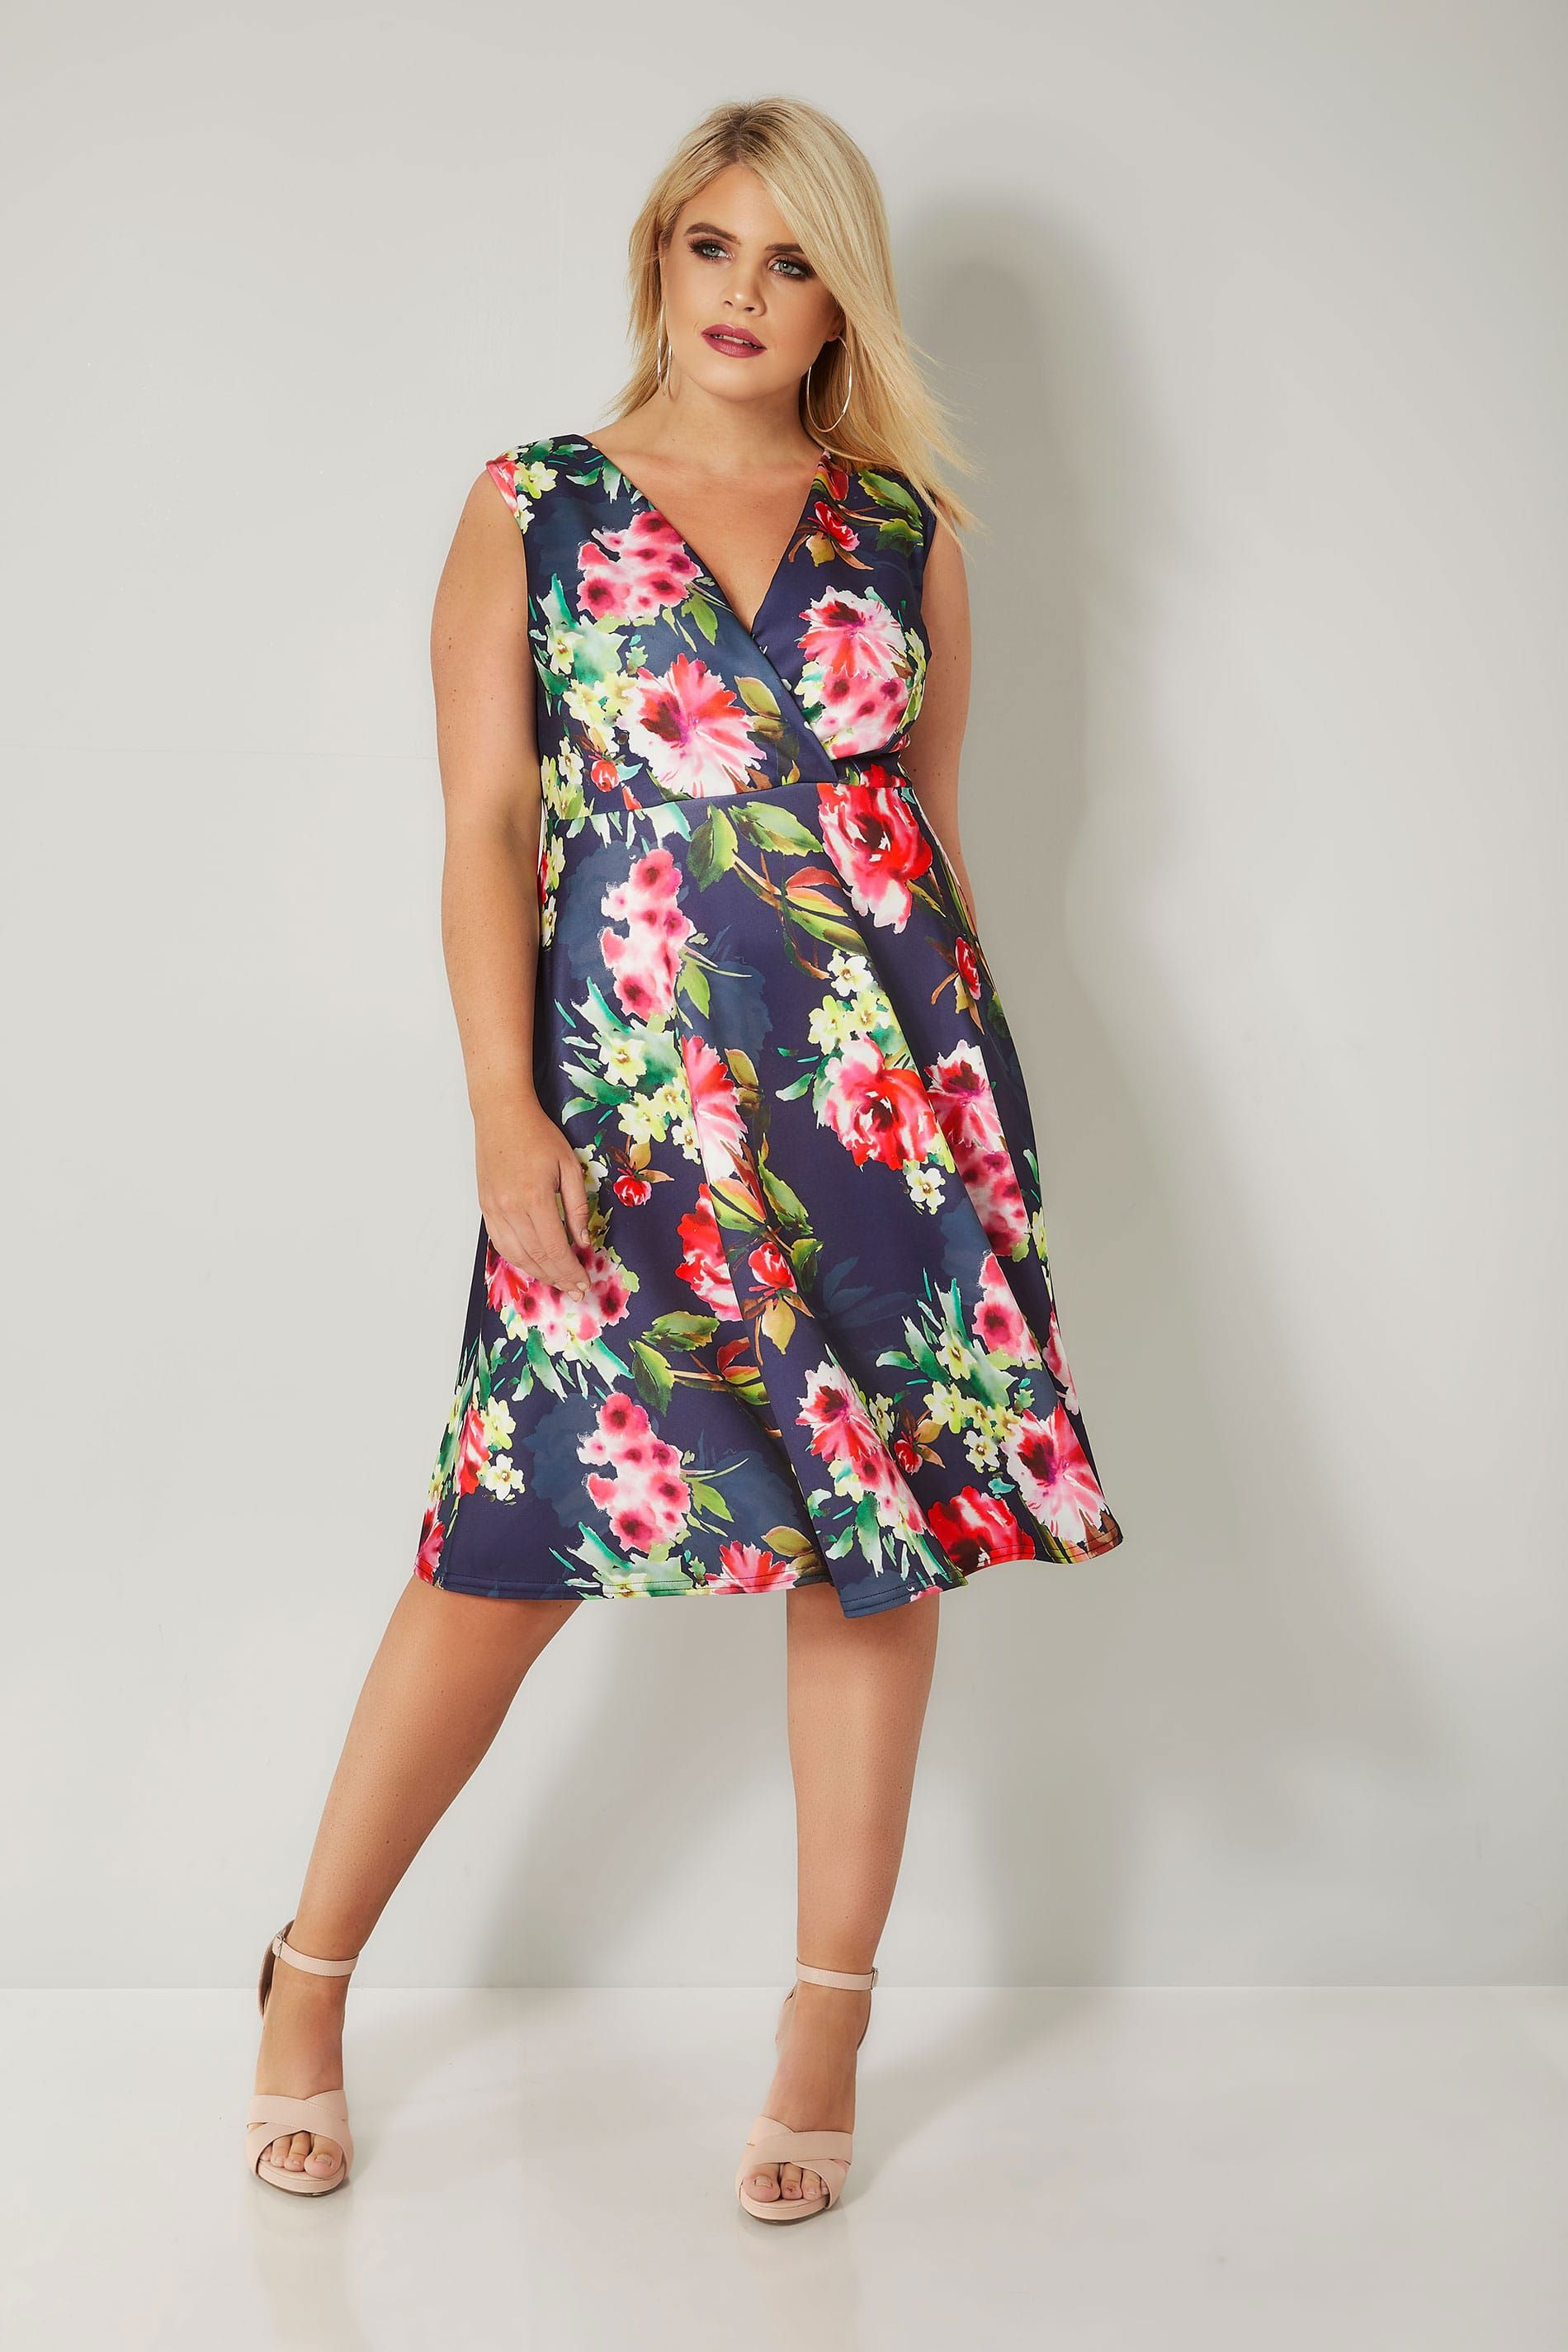 76e2bf2d55eaa Navy Floral Print Skater Dress in 2018